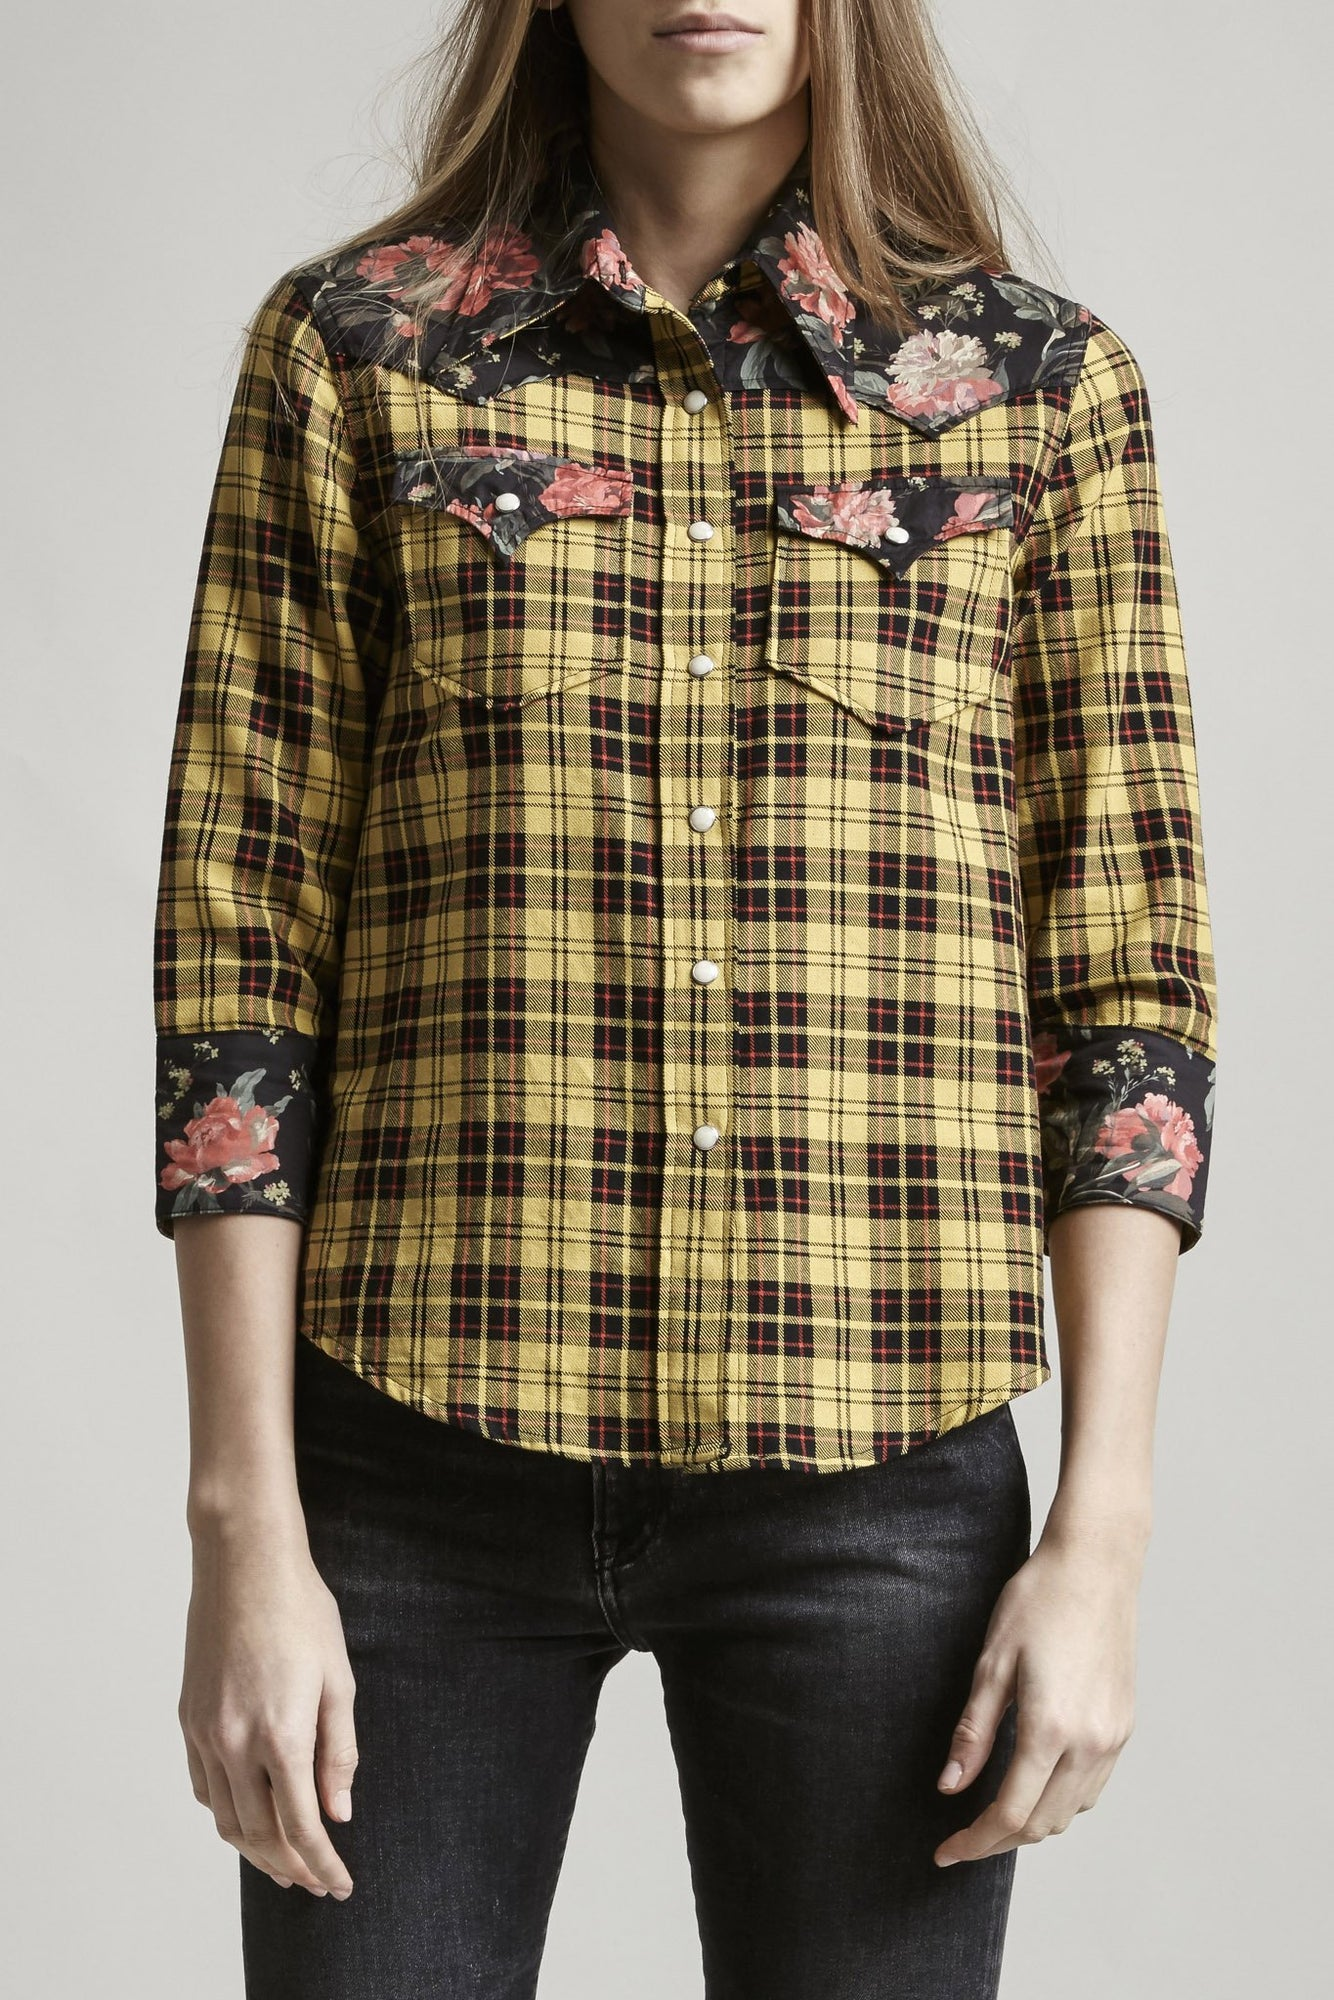 Exaggerated Collar Cowboy Shirt - Yellow w/ Black Floral